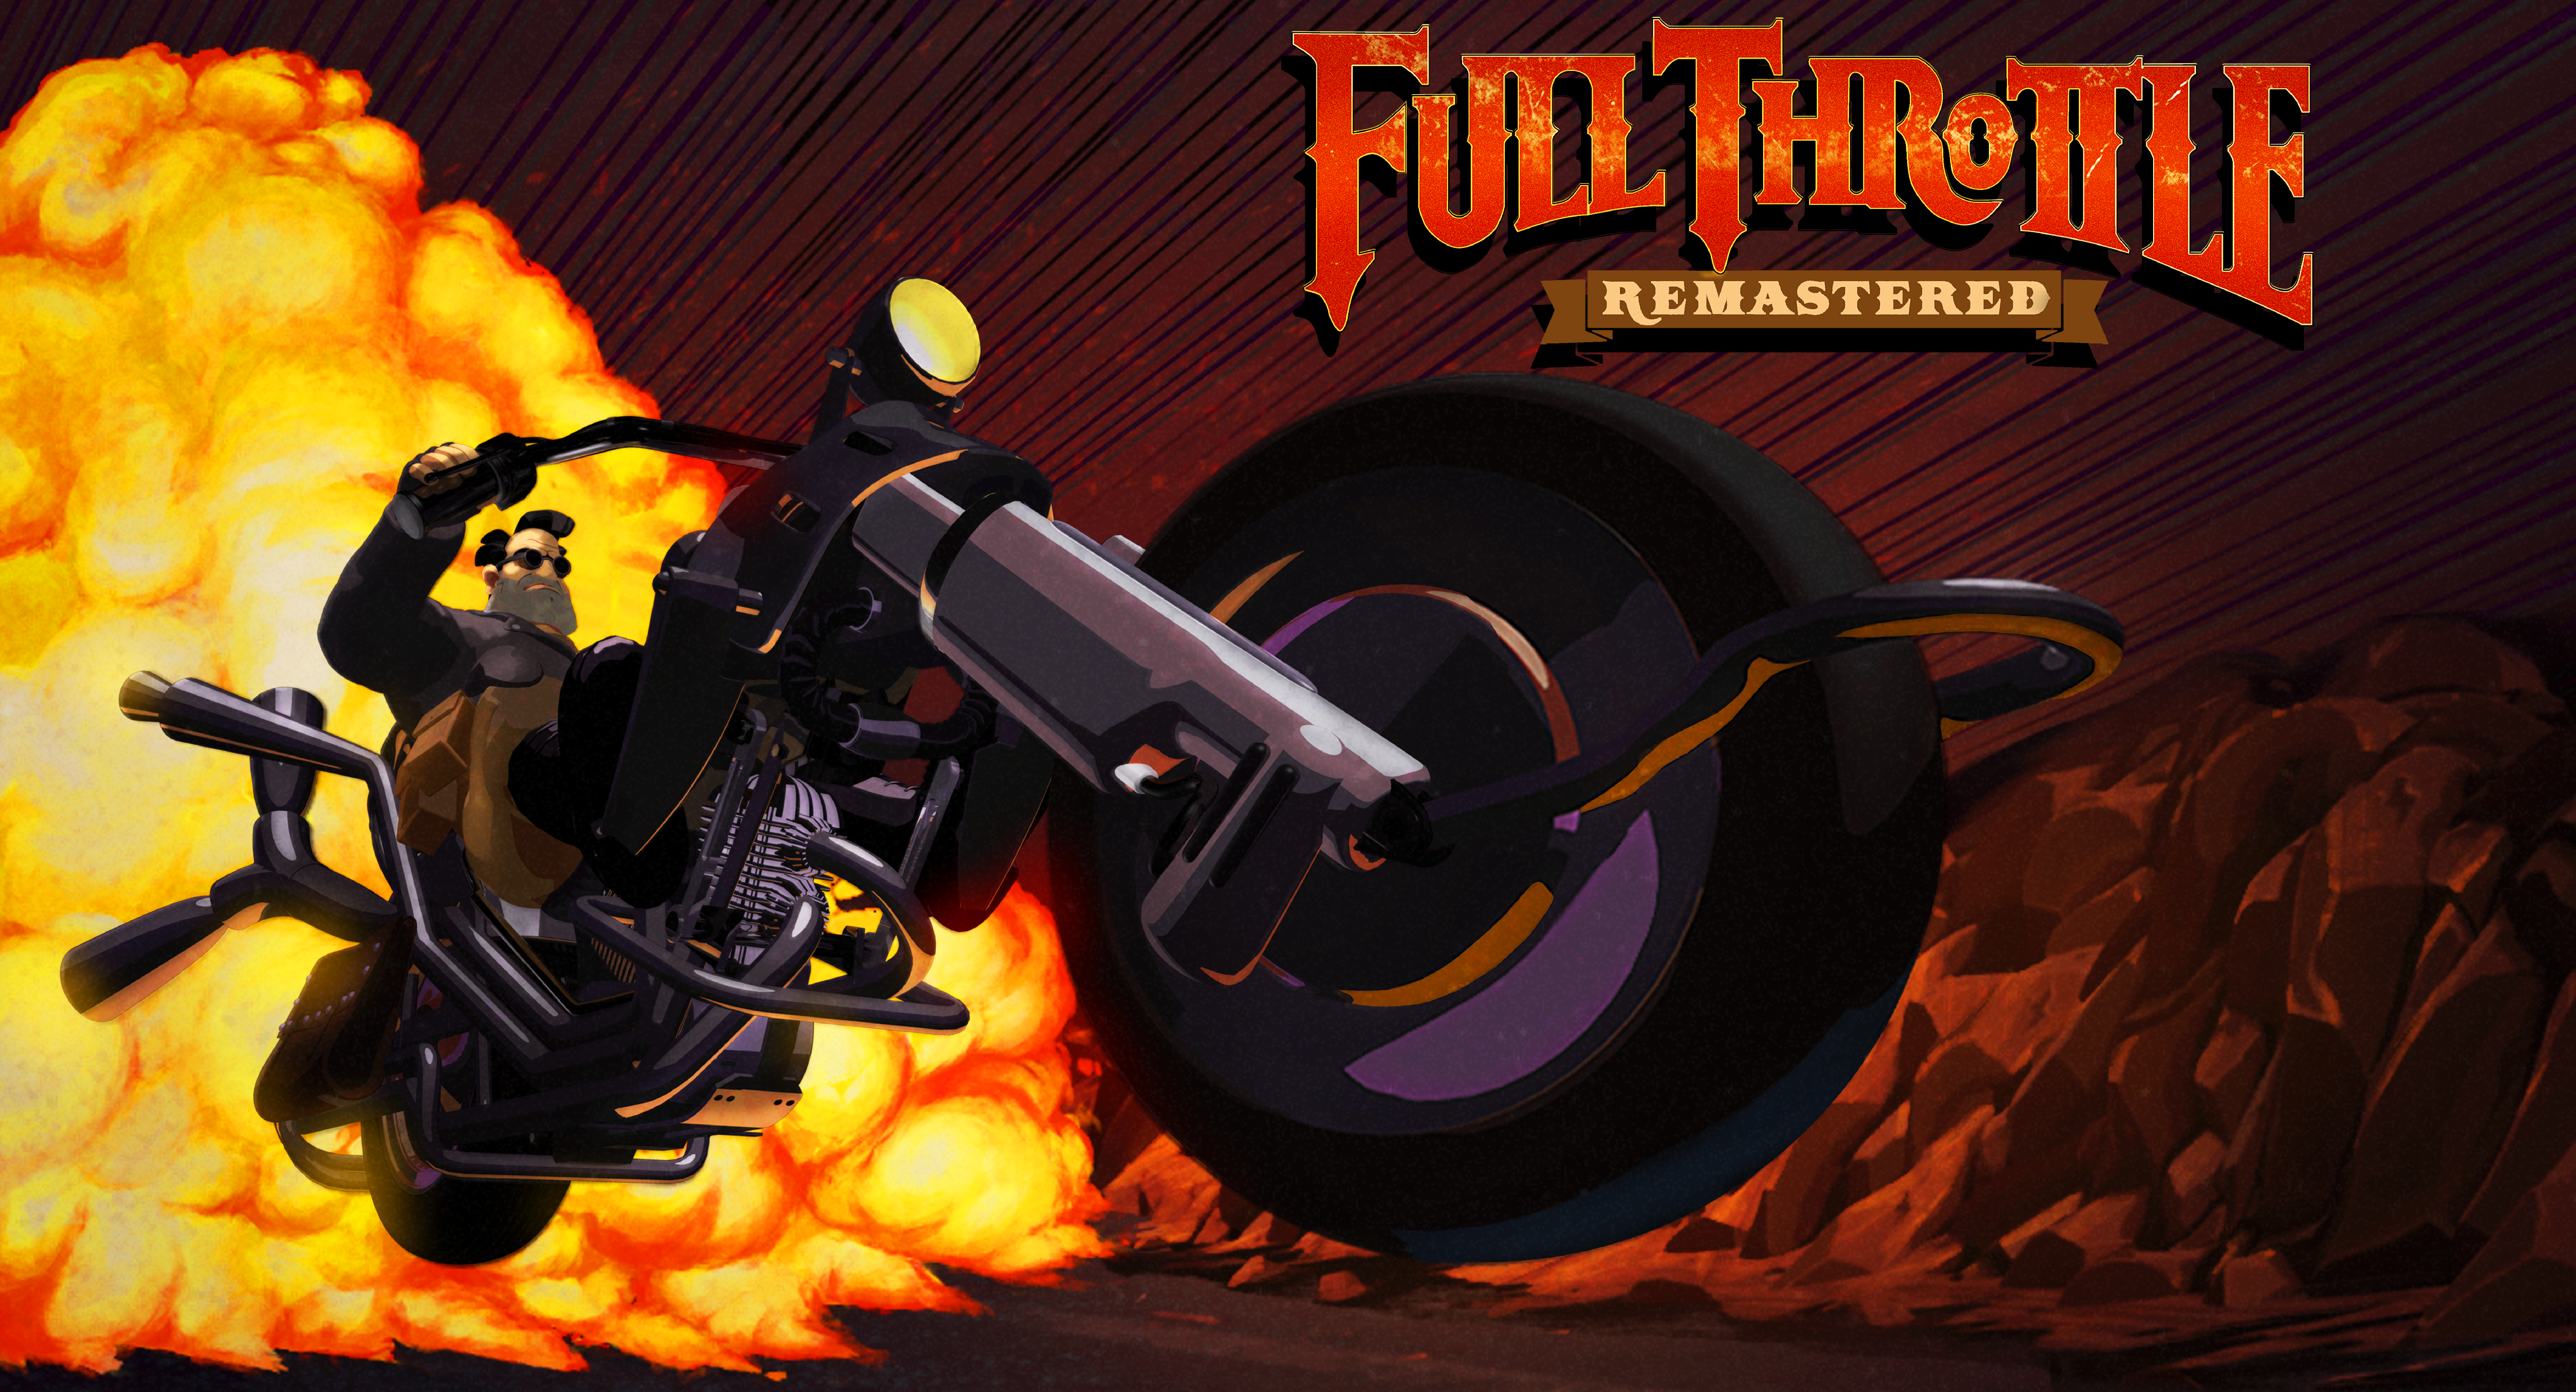 full-throttle-remastered-splash-screen